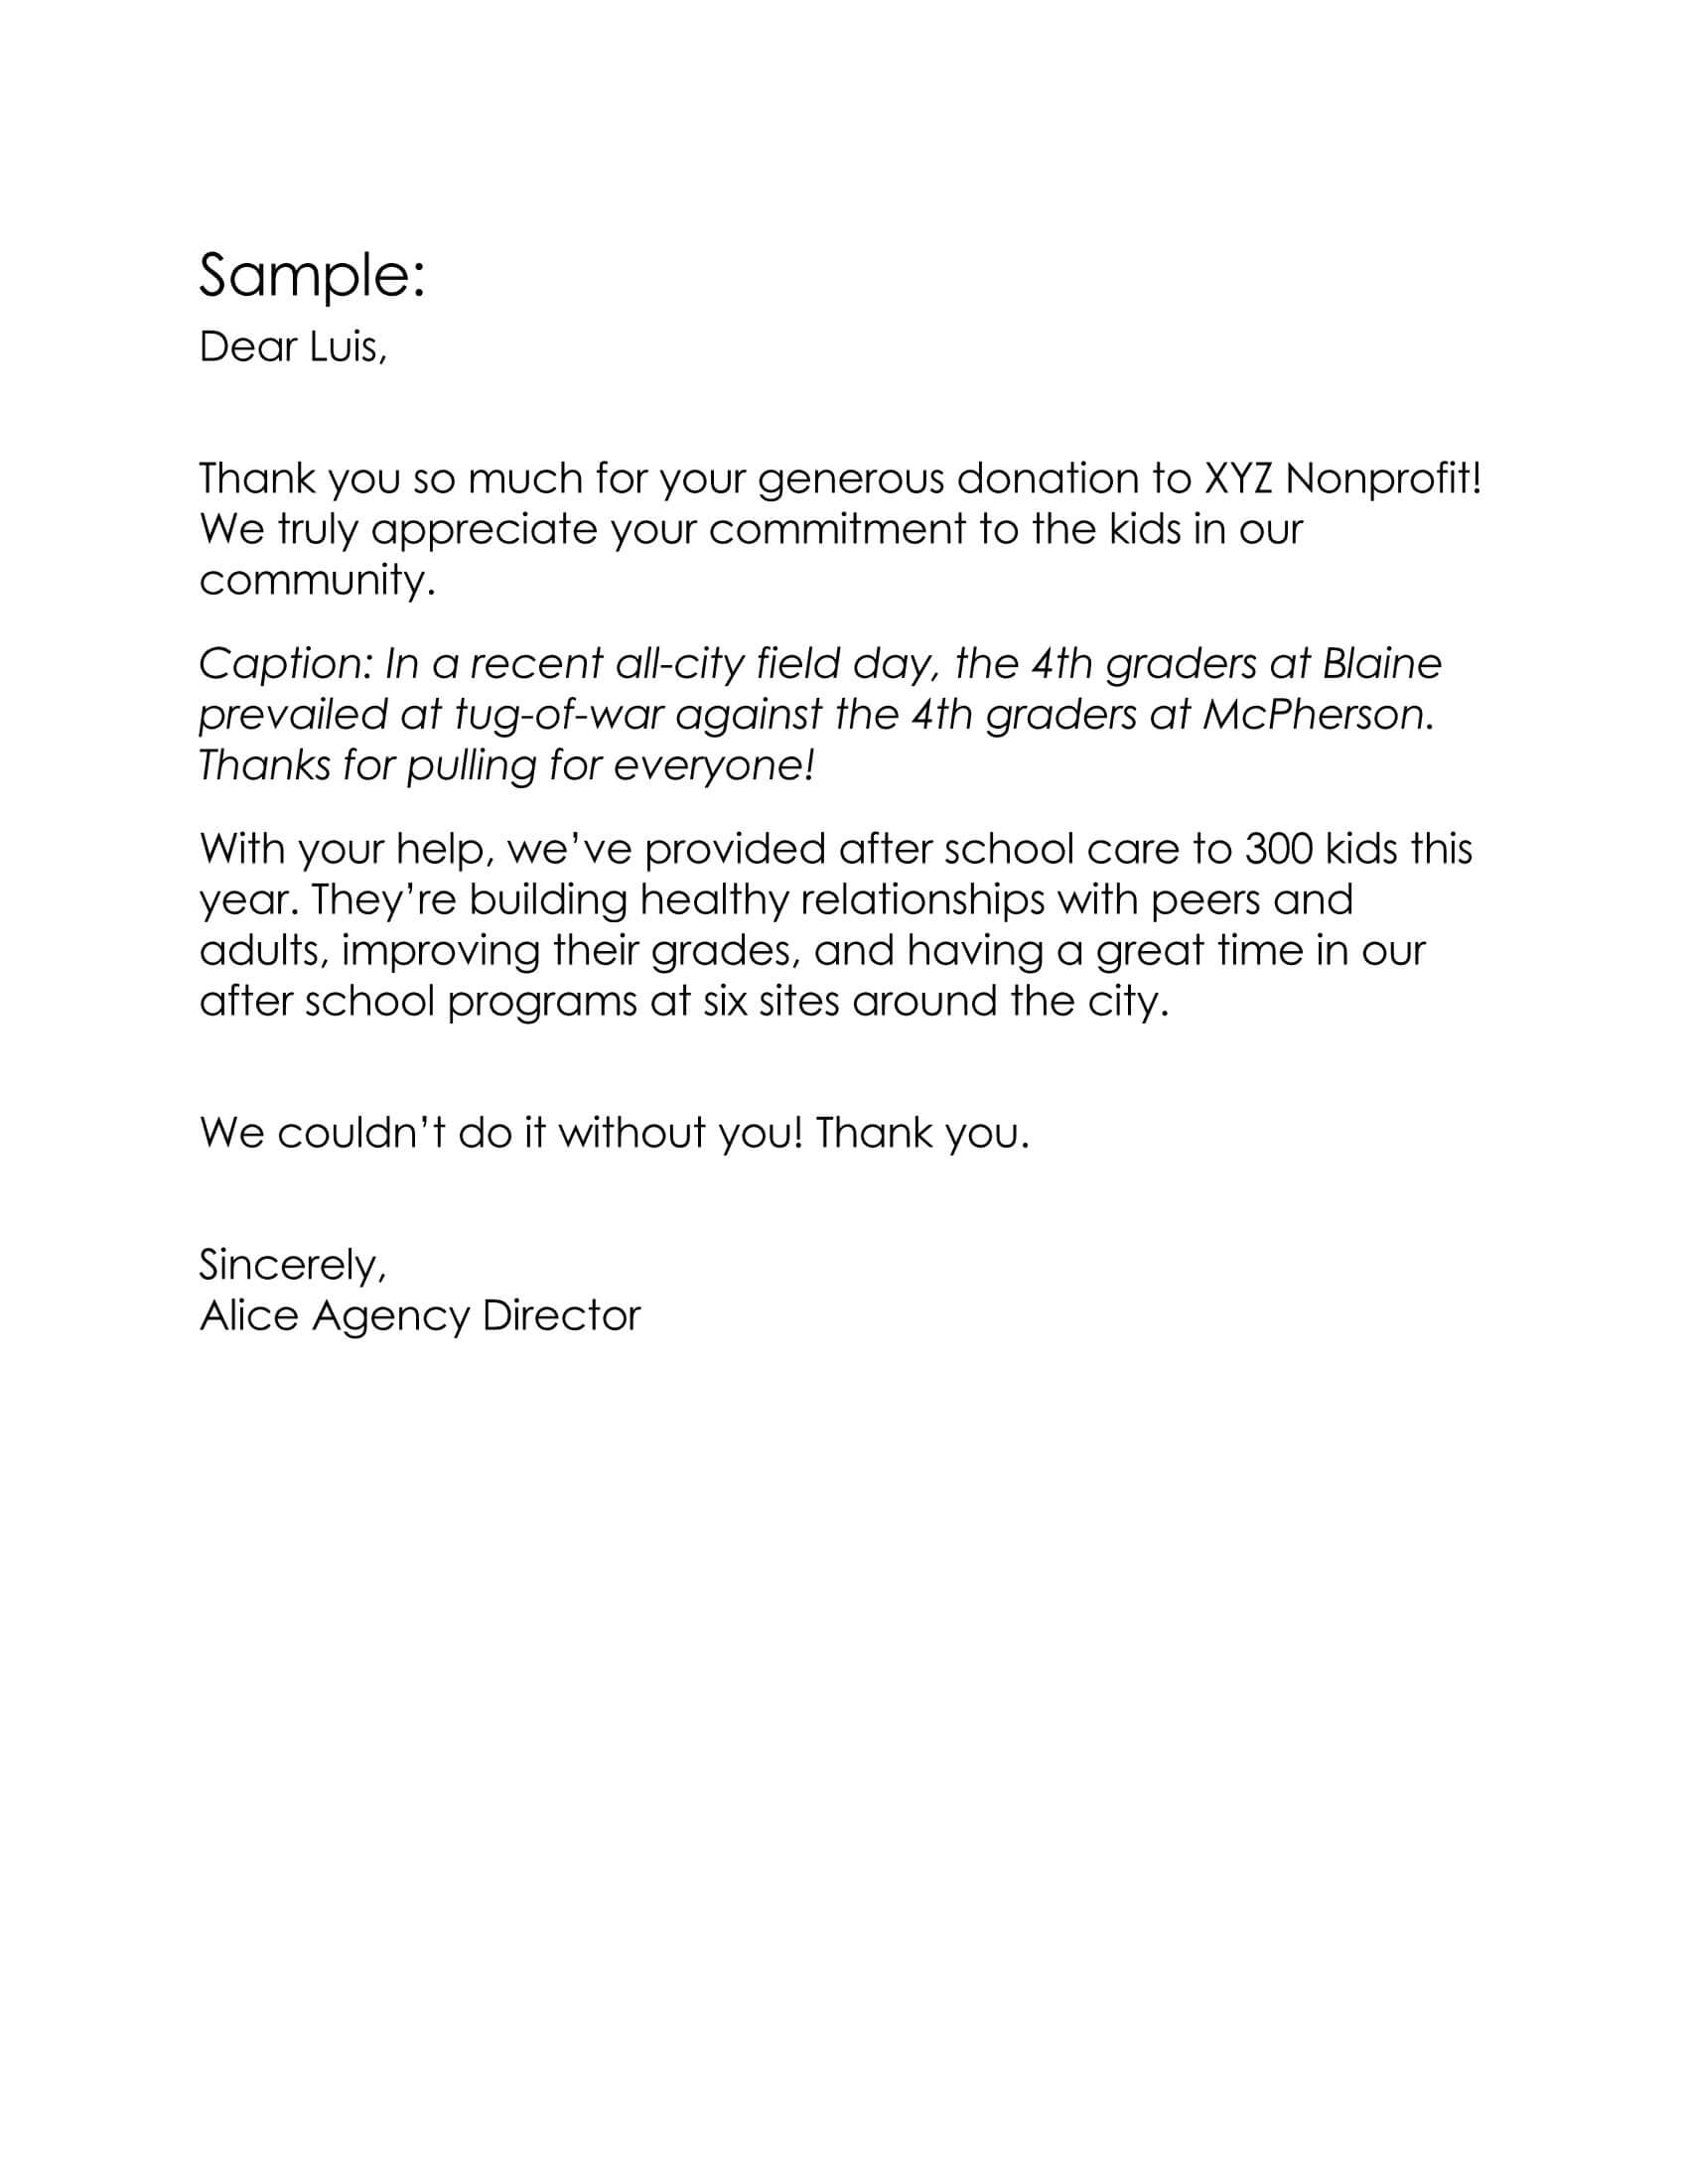 Donation Thank You Letter Sample 03